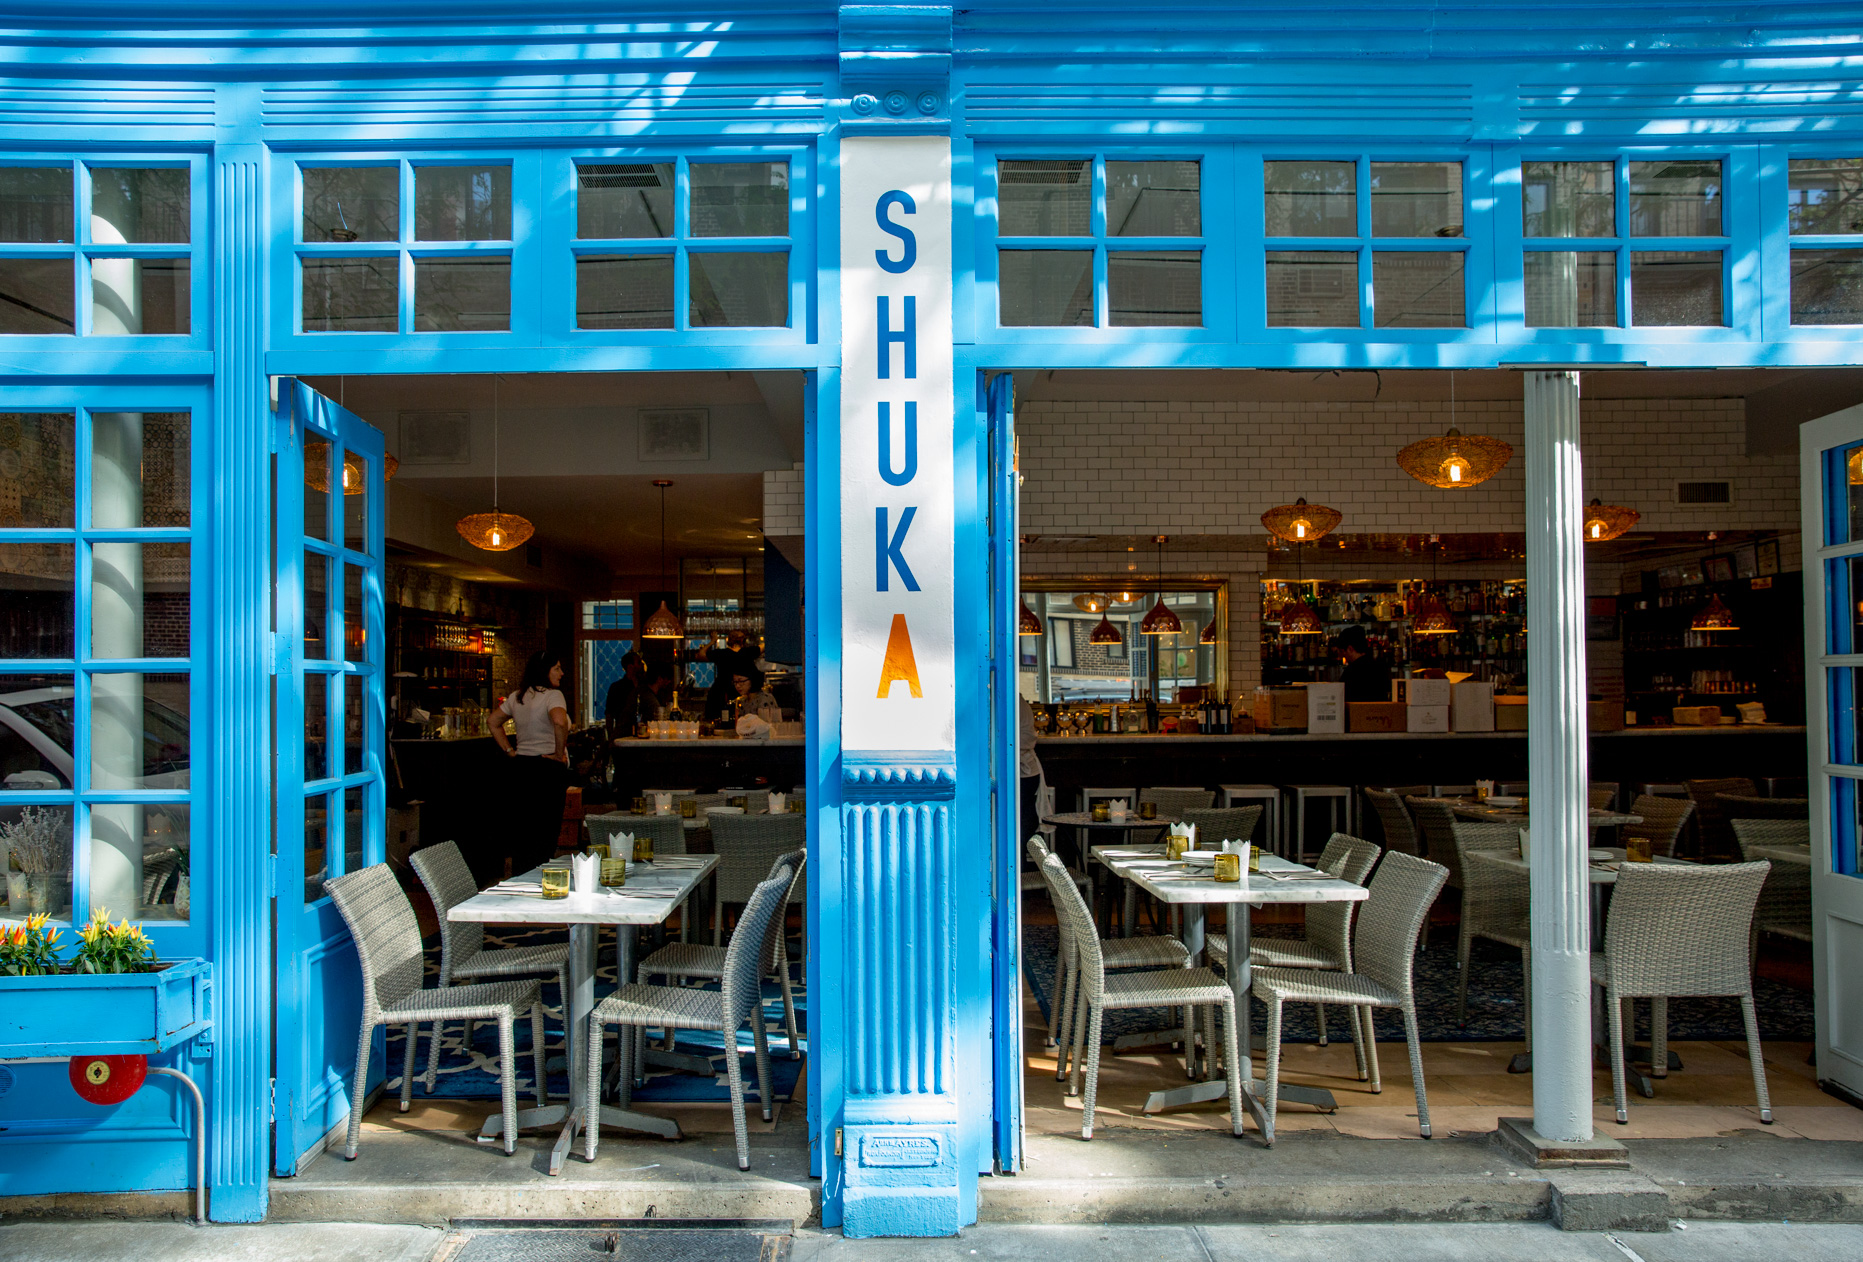 A Guide To The Super Cute Reasonably Priced Restaurant To